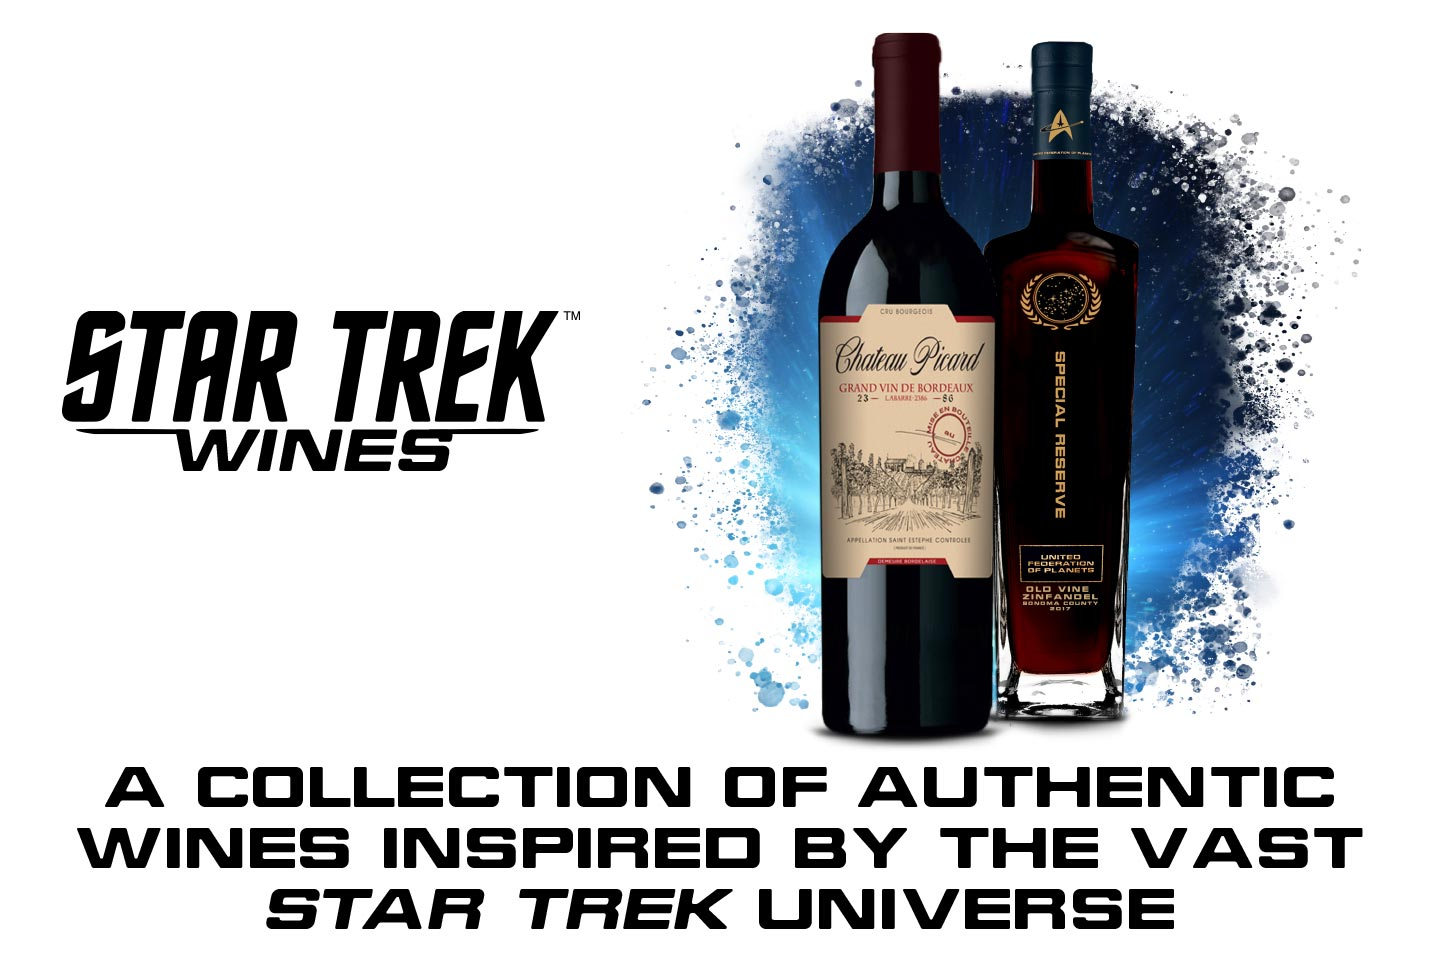 About Star Trek Wines